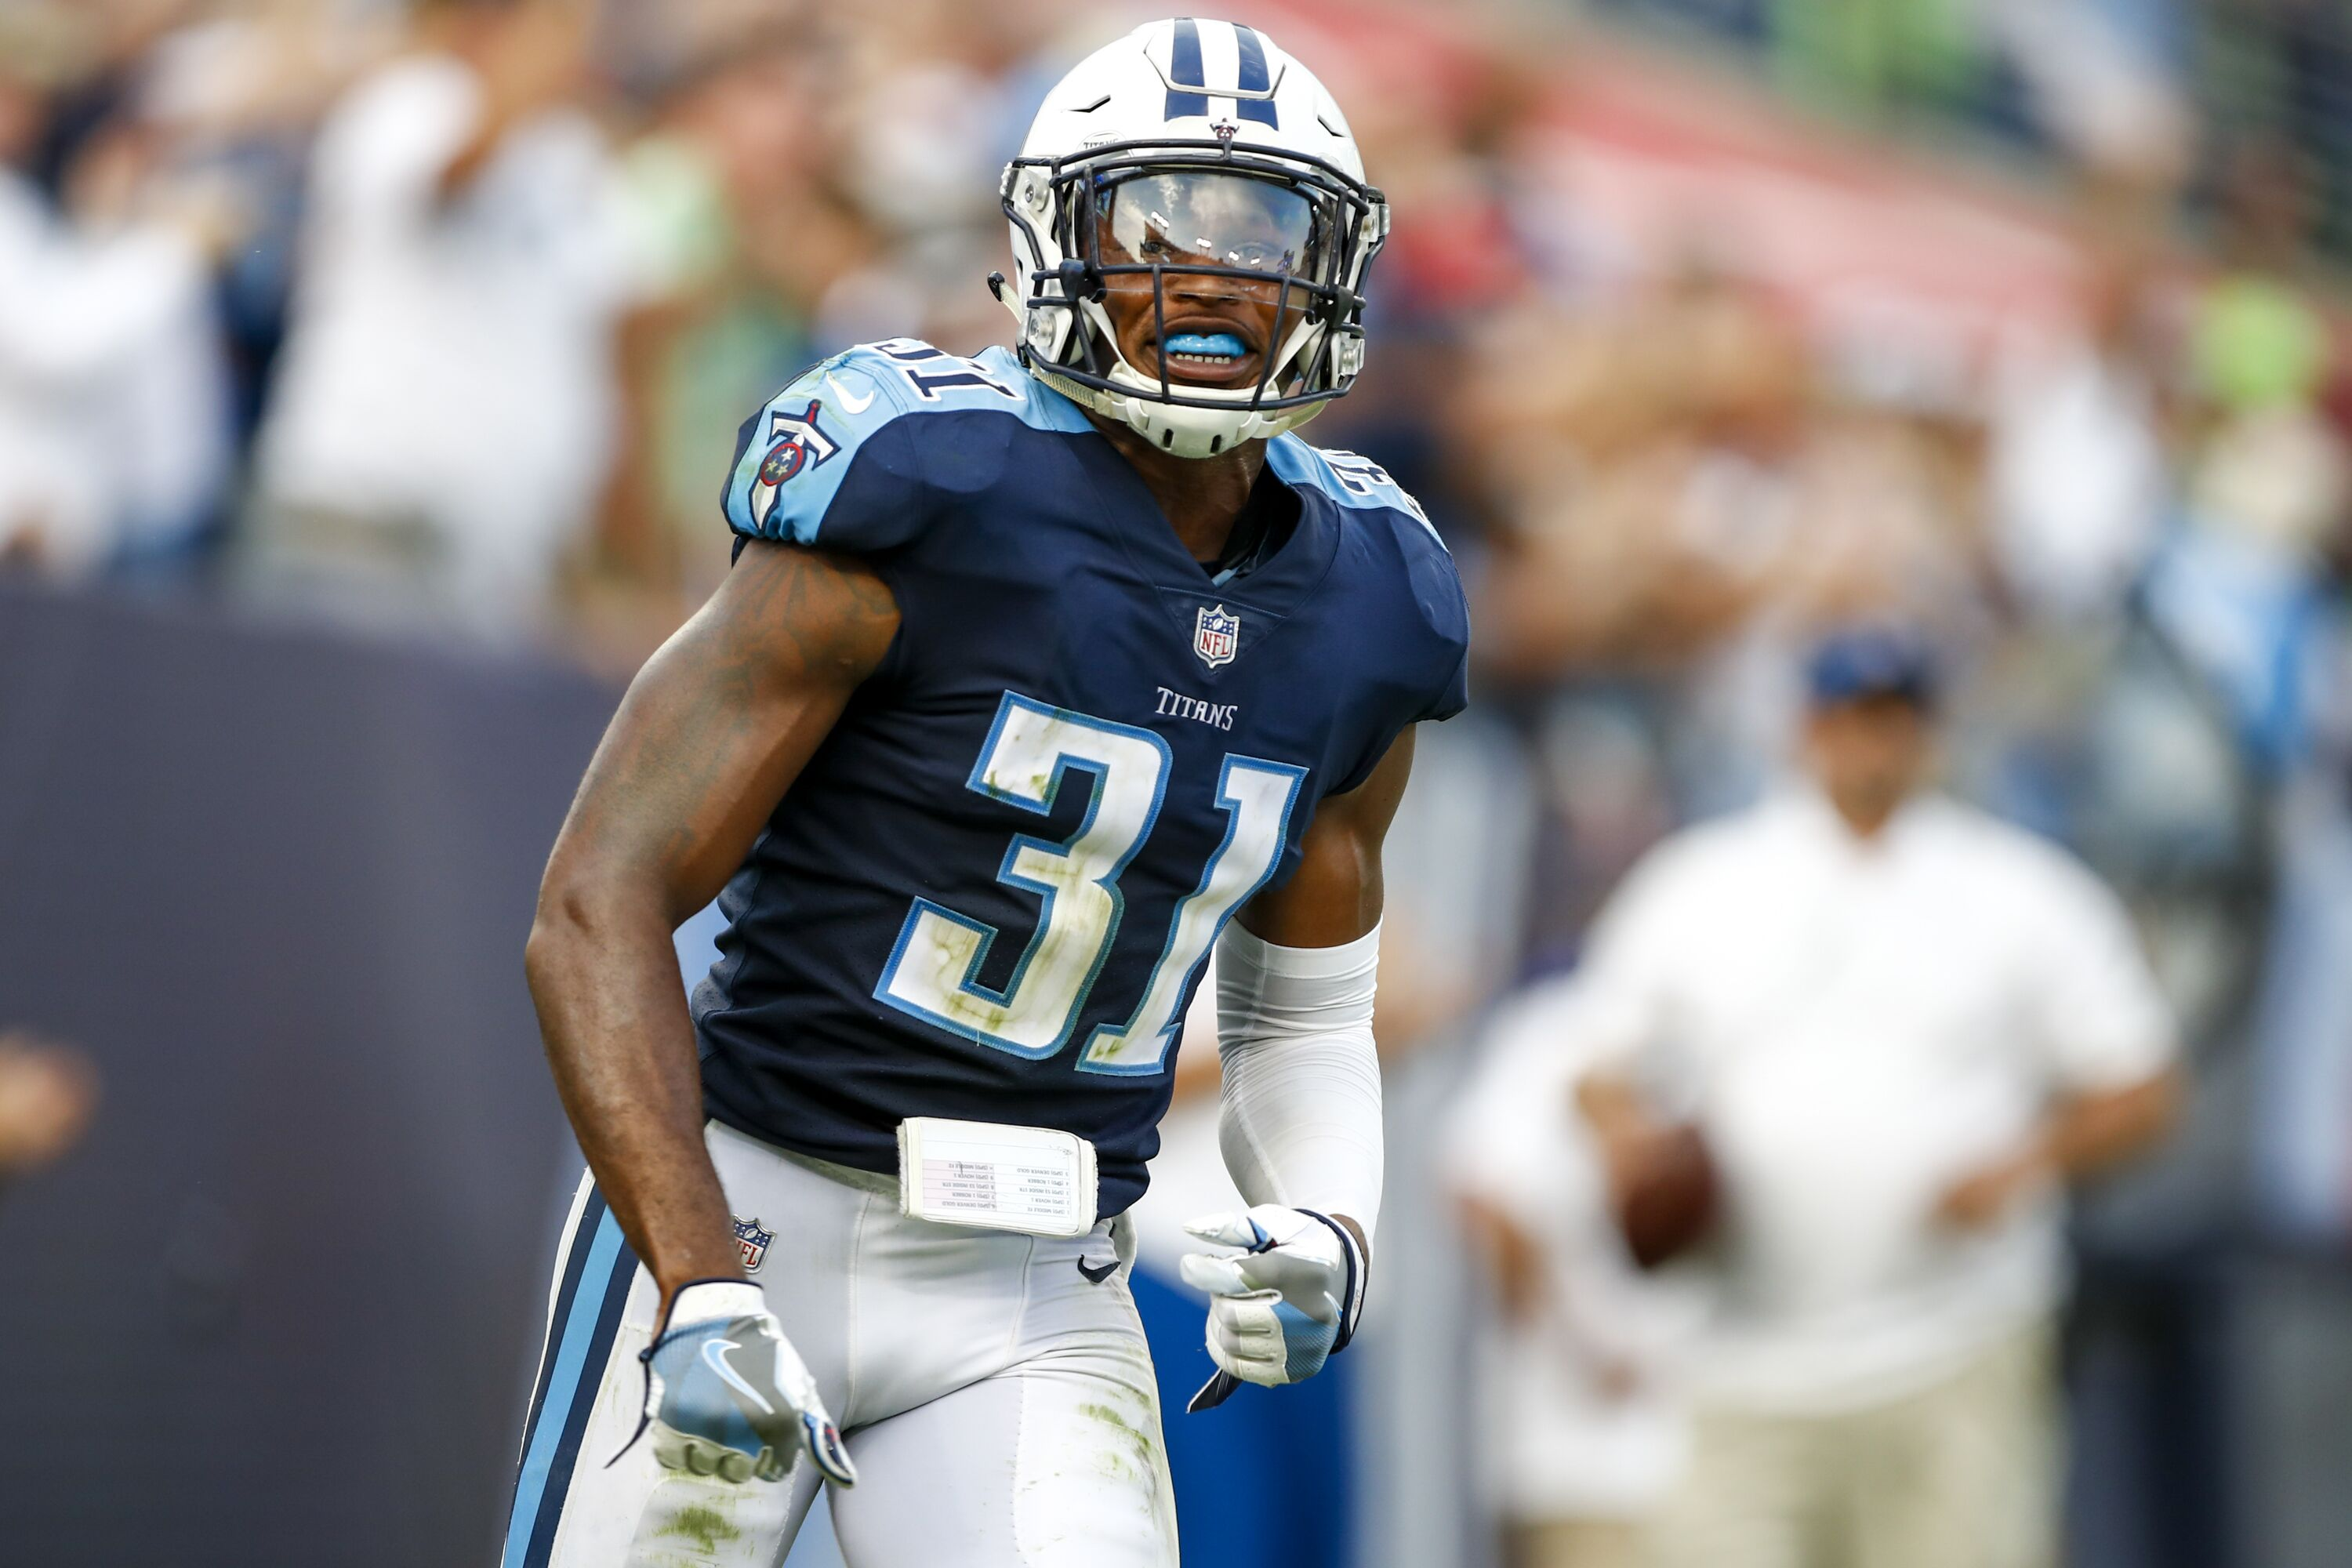 Titans New Uniforms 2020.Tennessee Titans Top 6 Impending Free Agents For 2020 Page 2